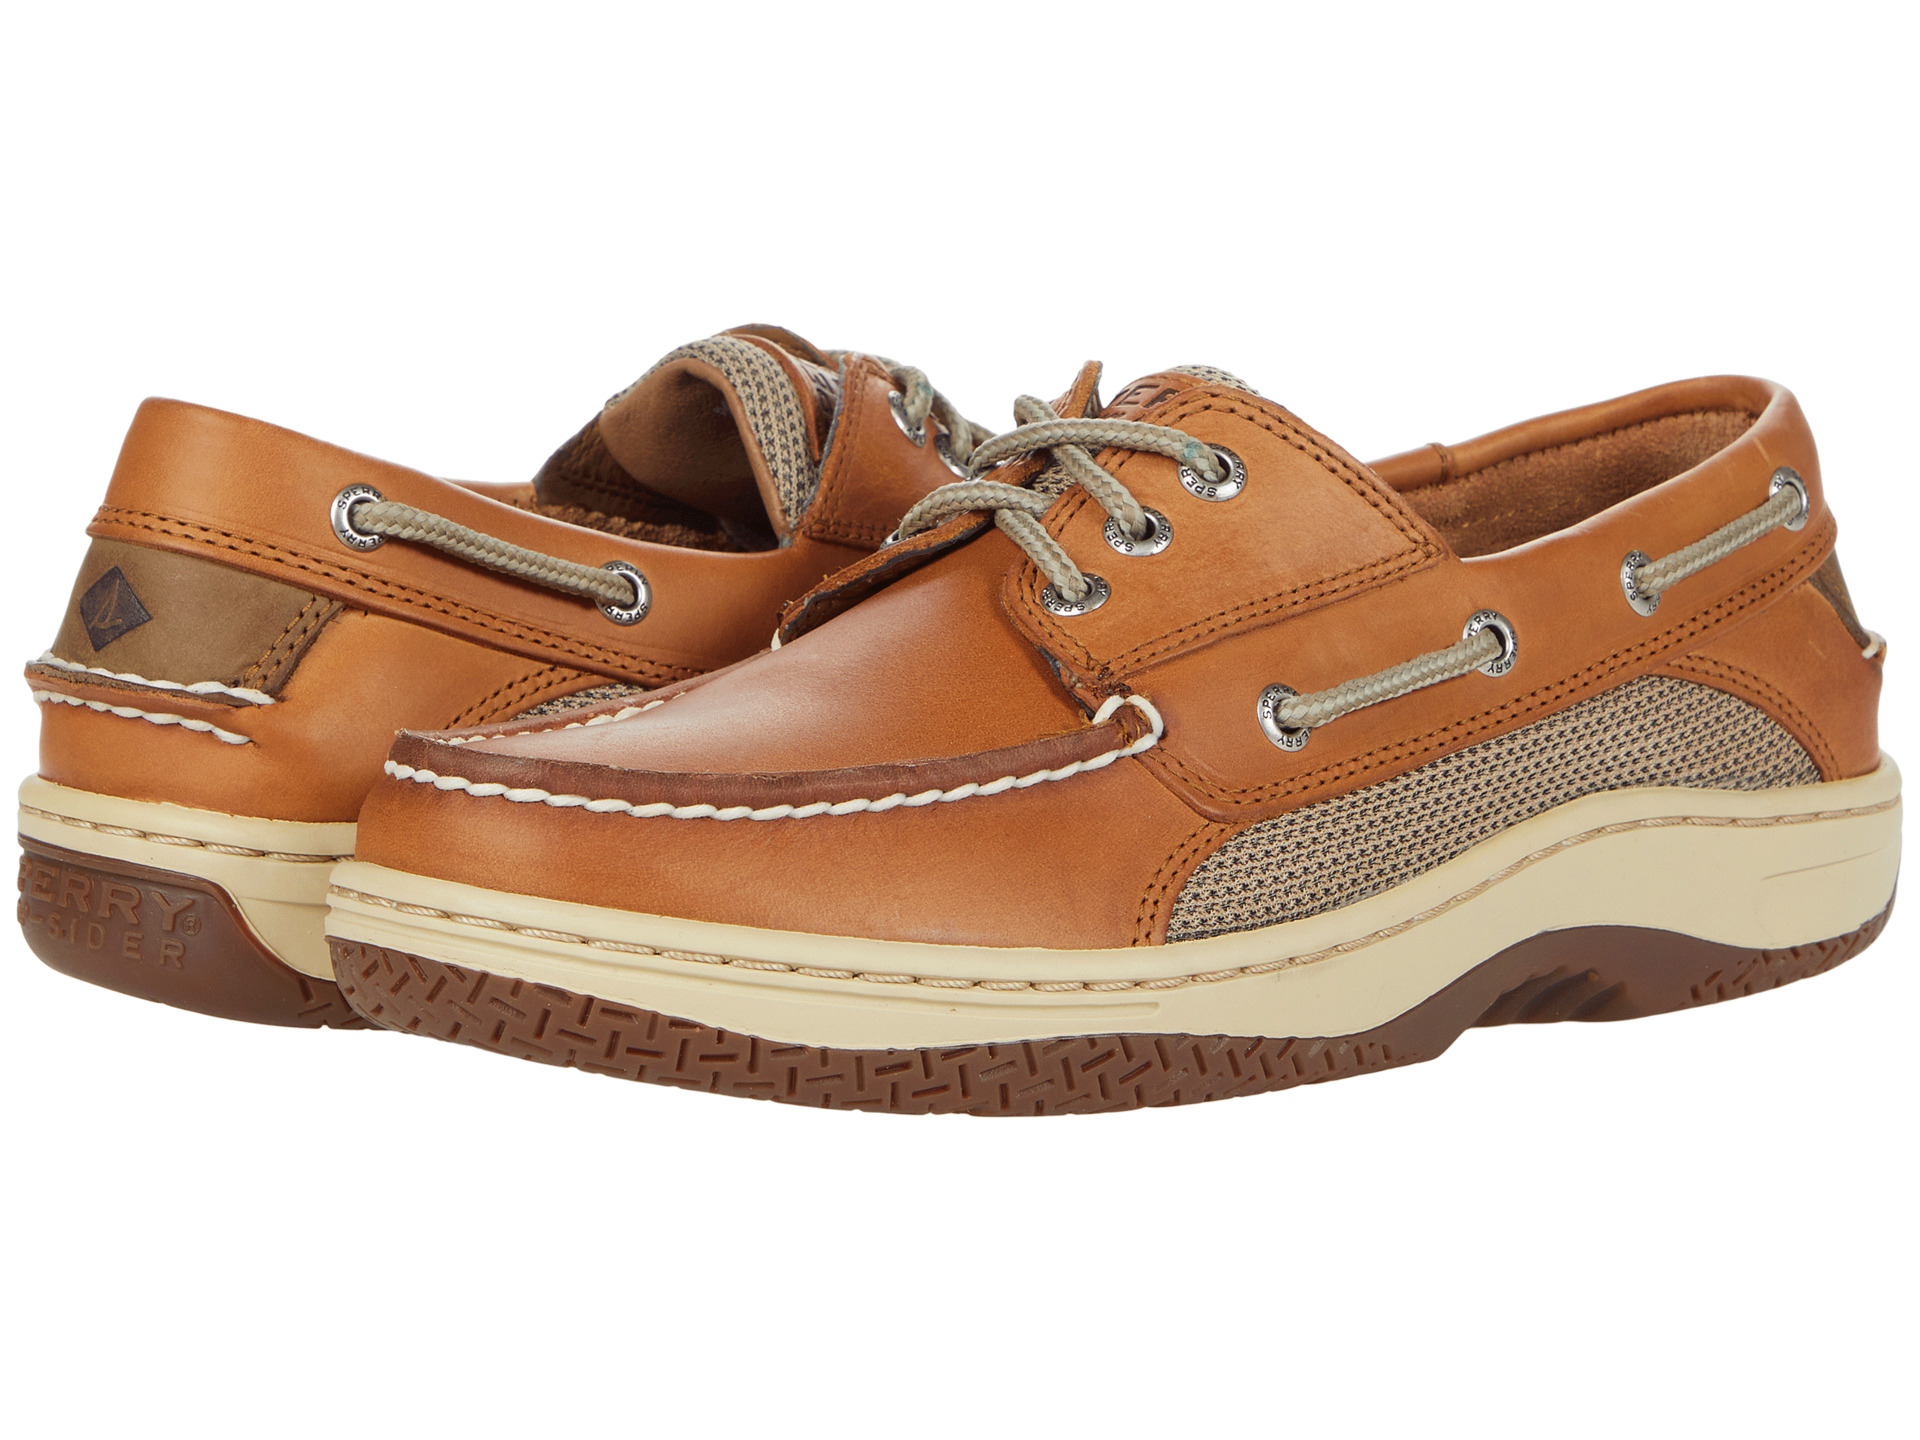 Sperry TopSider Billfish 3Eye Boat Shoe  Zappos.com Free Shipping